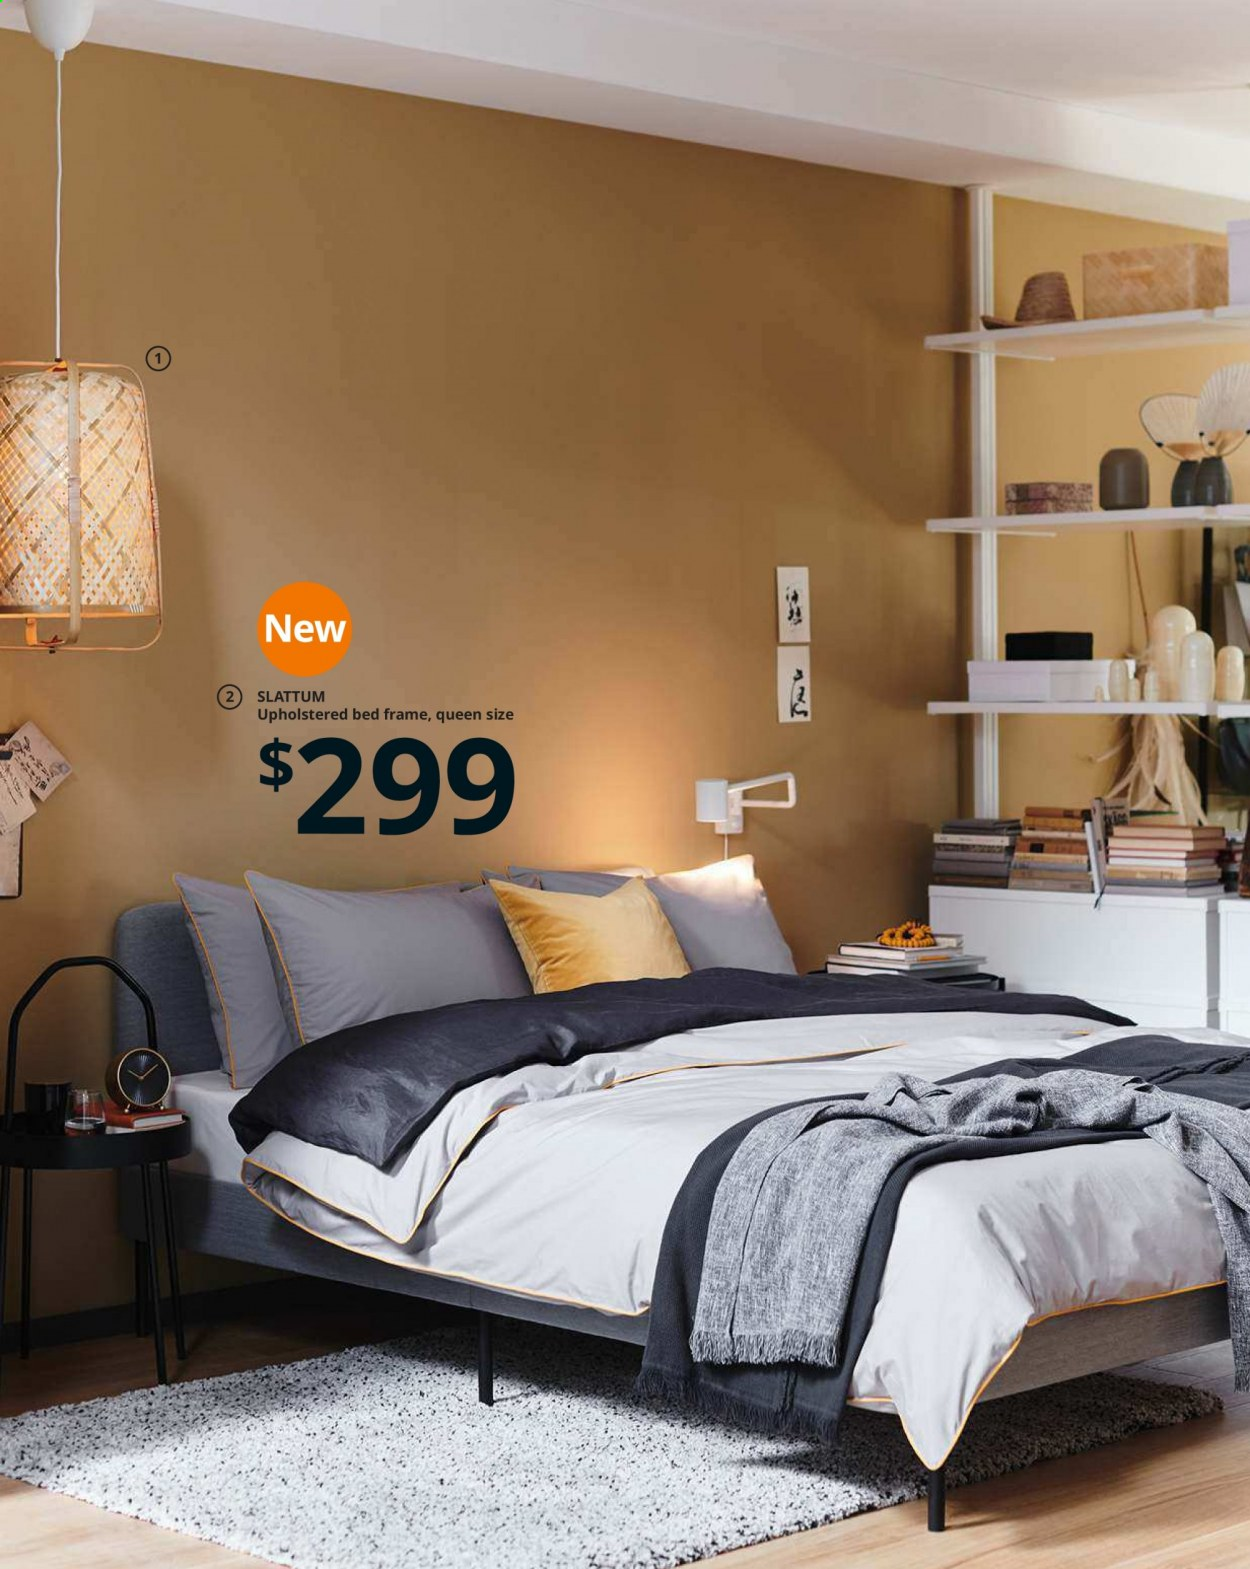 IKEA offer  - Sales products - bed, bed frame, cabinet, door, glass, lamp, mattress, table lamp, upholstered bed, powder, pendant, pendant lamp. Page 66.